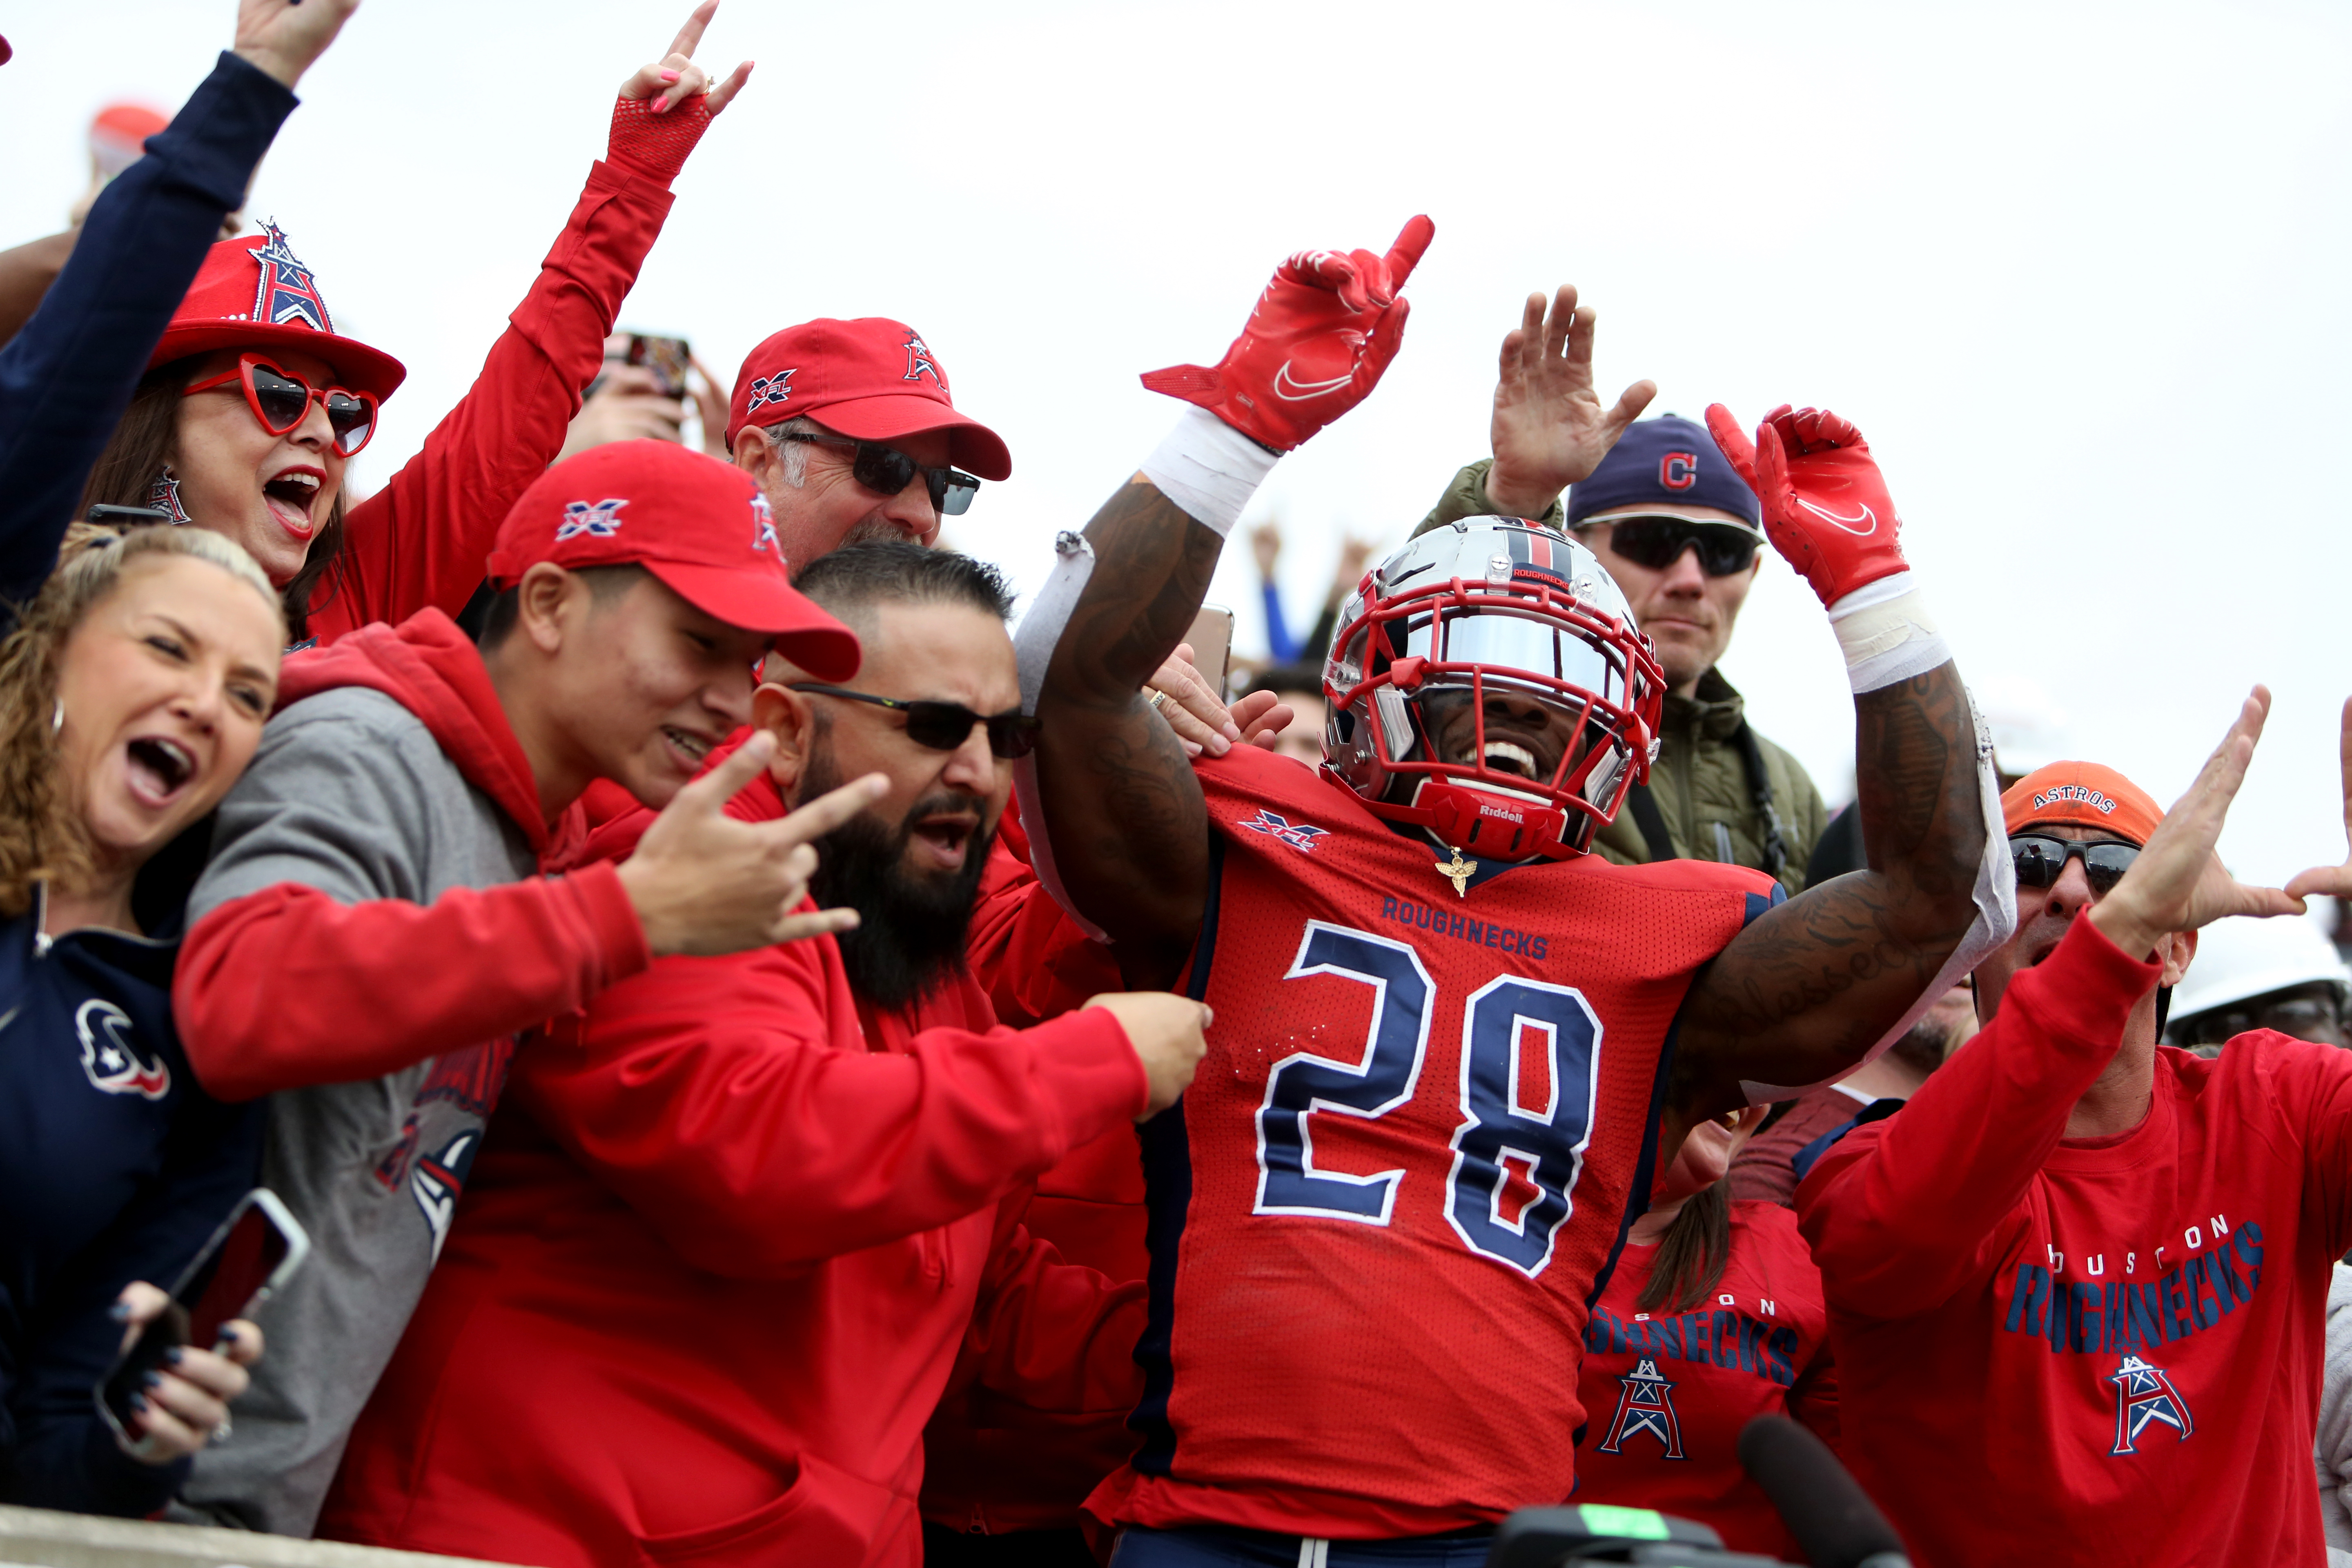 James Butler #28 of the Houston Roughnecks celebrates his touchdown with Houston Roughnecks fans in the stands at TDECU Stadium on March 7, 2020 in Houston, Texas.